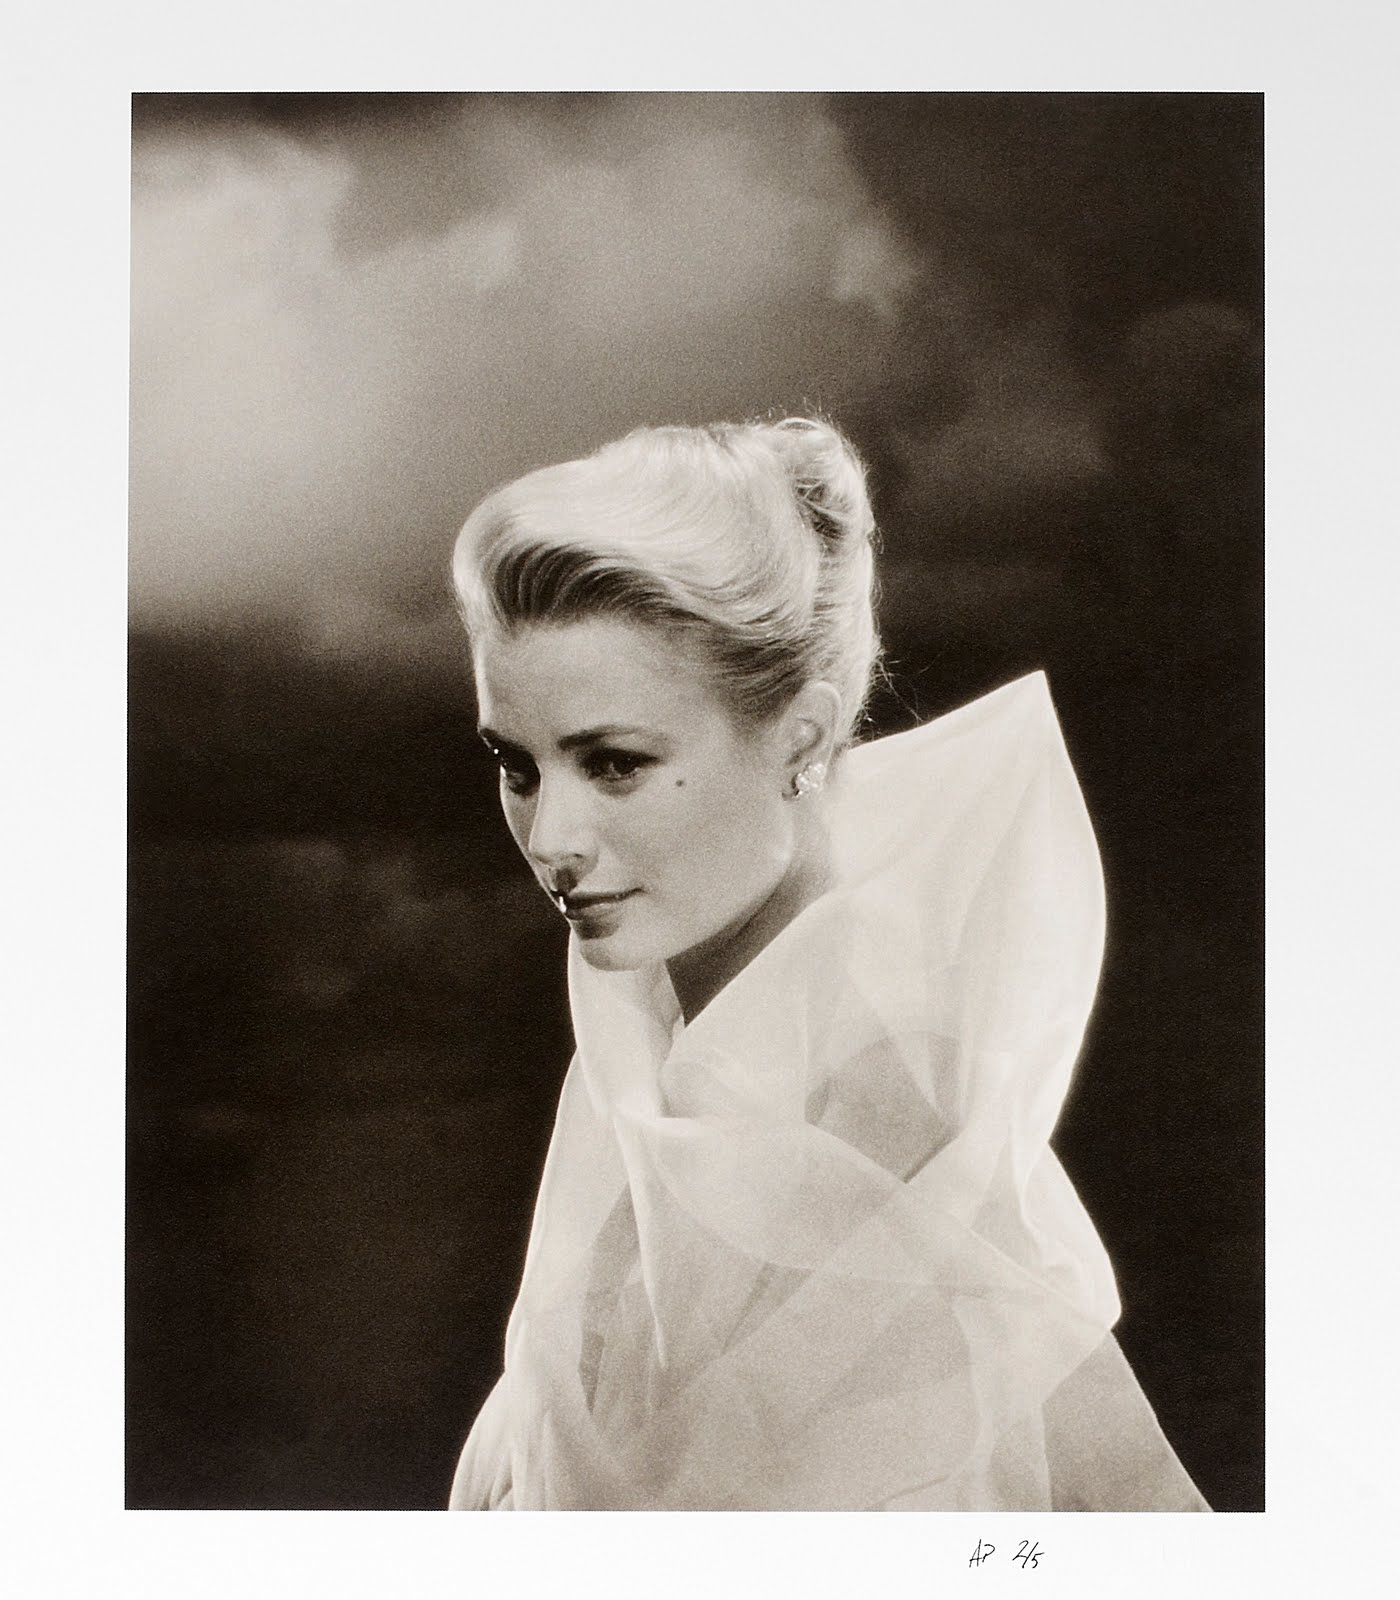 vogue-archive-collection-limited-edition-print-jean-howard-grace-kelly.jpg